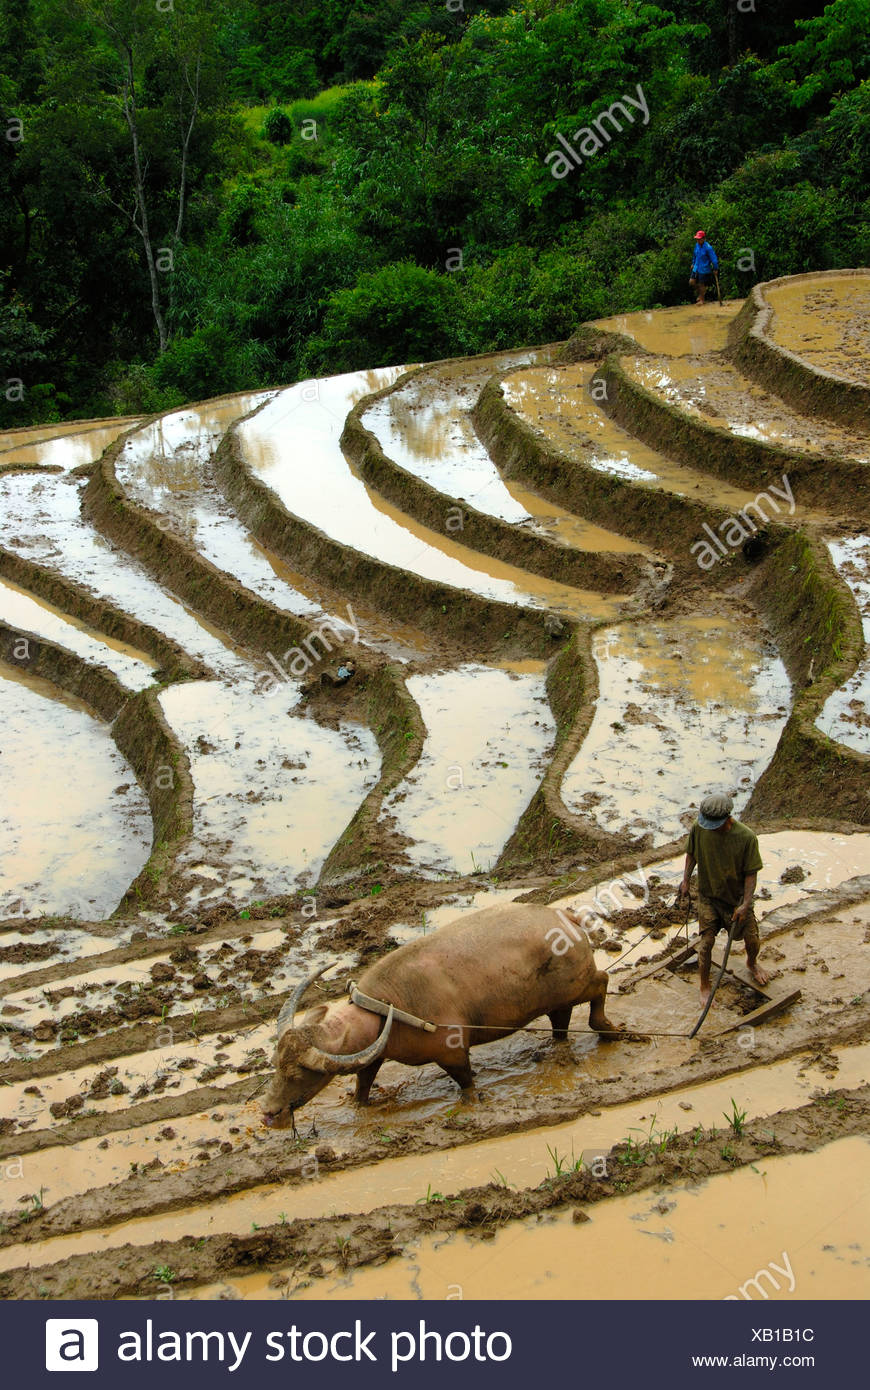 Mountain paddy, irrigated rice terraces, farmer tilling and plowing the field with a water buffalo - Stock Image